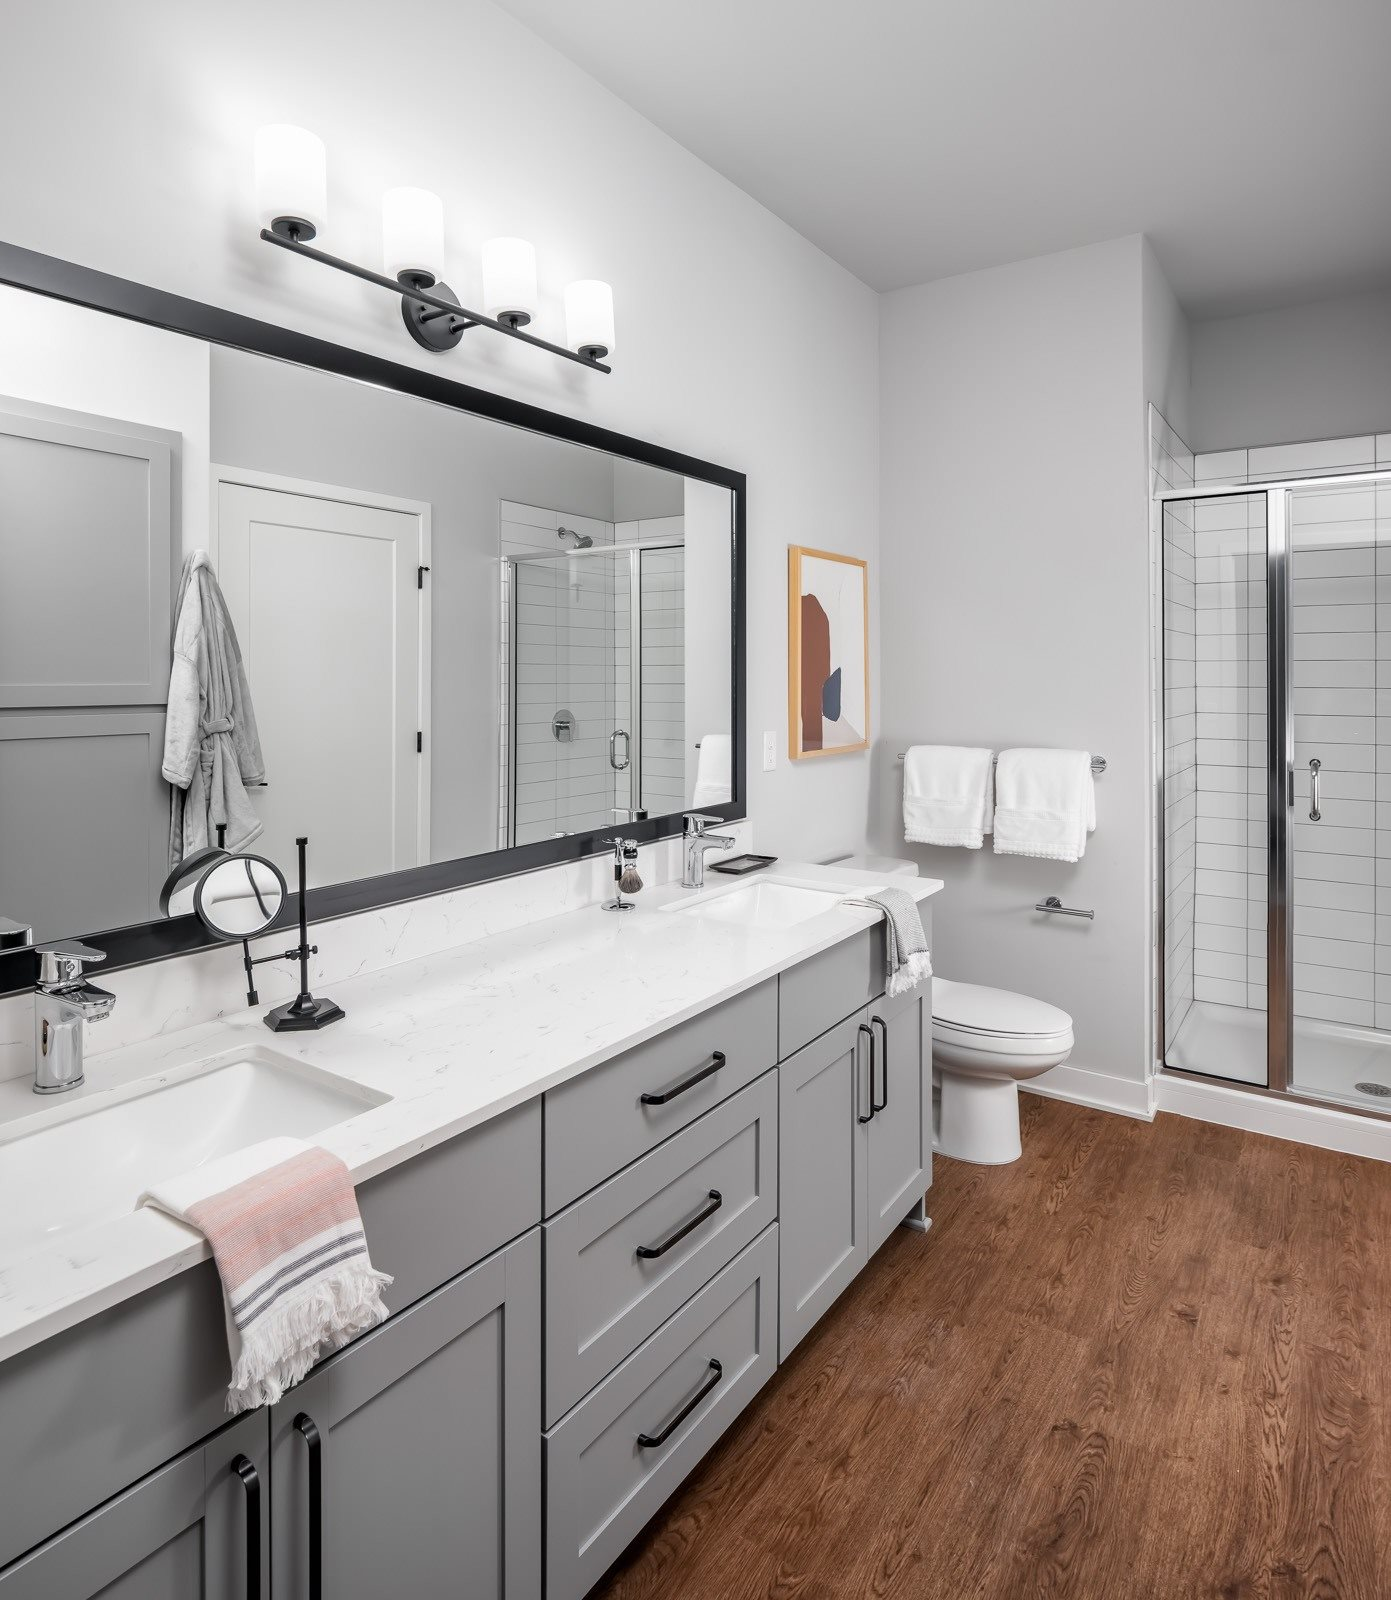 Designer bathroom with grey shaker cabinets and double vanity